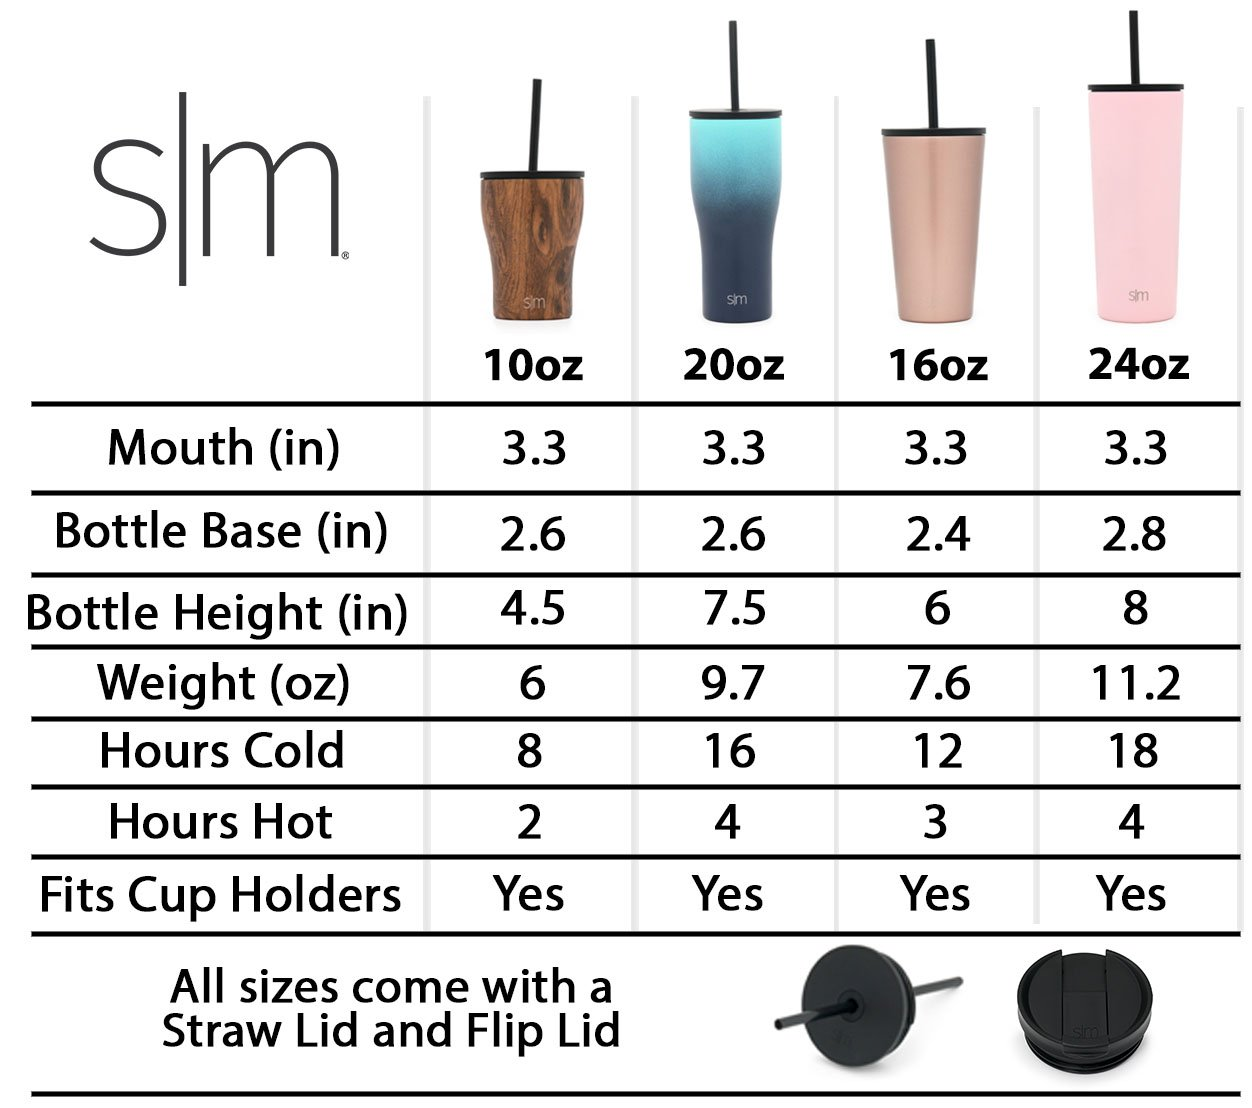 Simple Modern 16oz Classic Pint Tumbler Mug with Straw Lid and Flip Lid - Vacuum Insulated Beer Glasses Tumbler Flask 18/8 Stainless Steel Hydro Thermos Cup - Midnight Black by Simple Modern (Image #5)